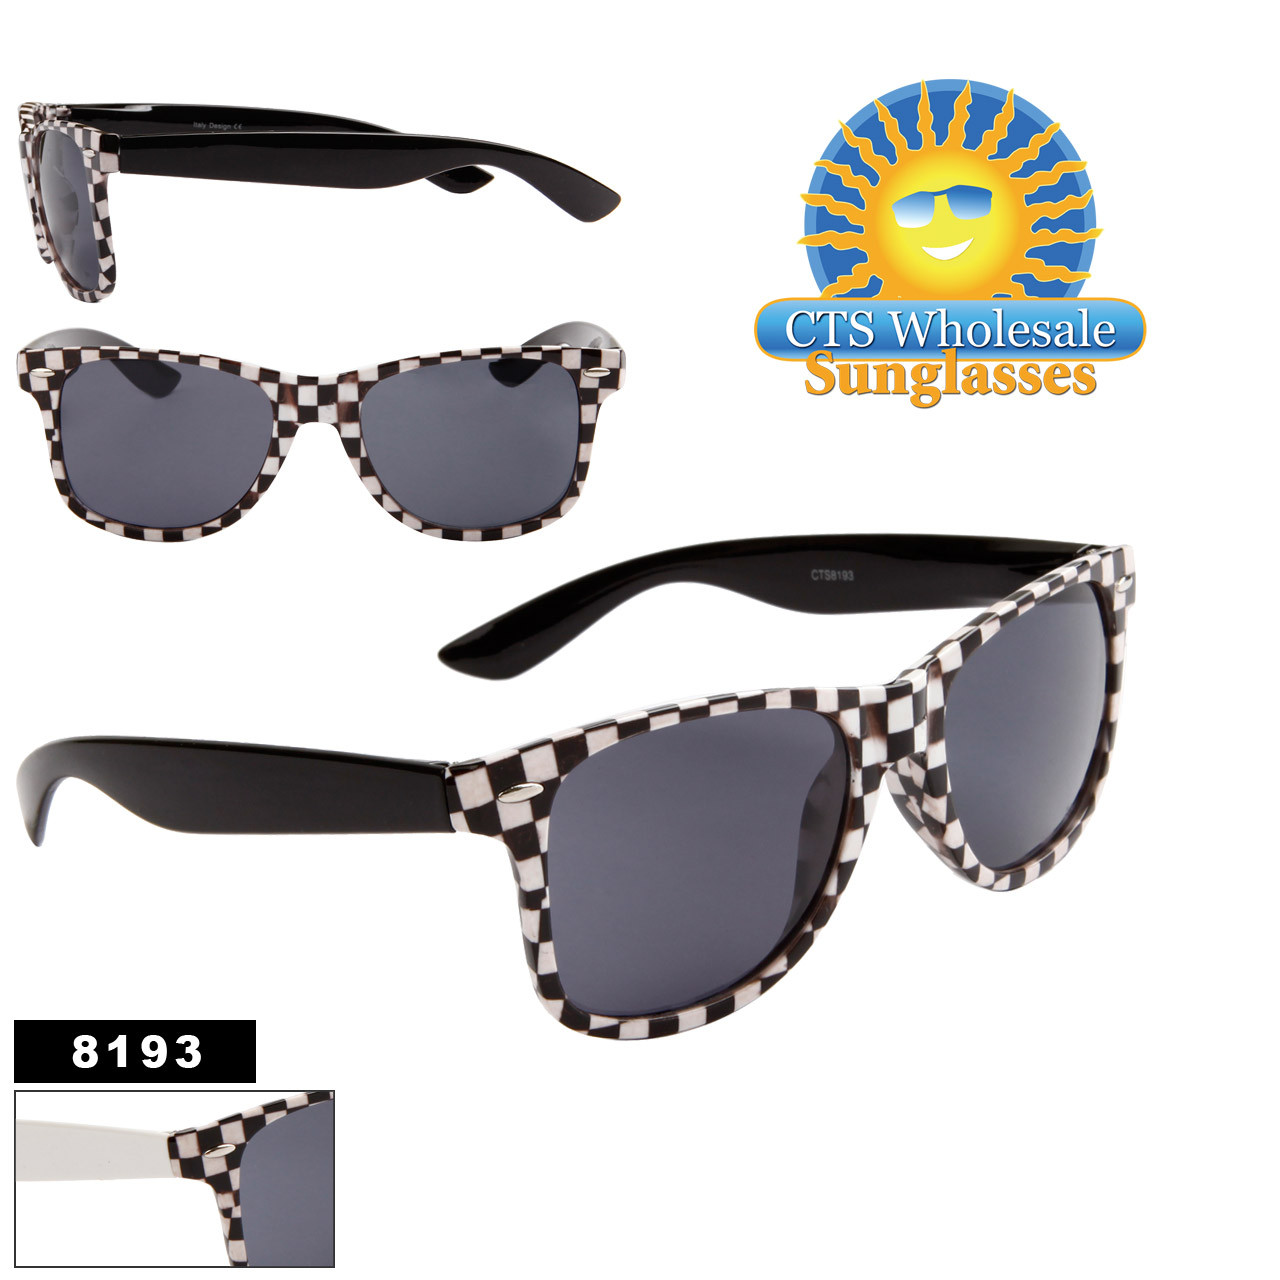 Checkered California Classics Sunglasses Wholesale - Style # 8193